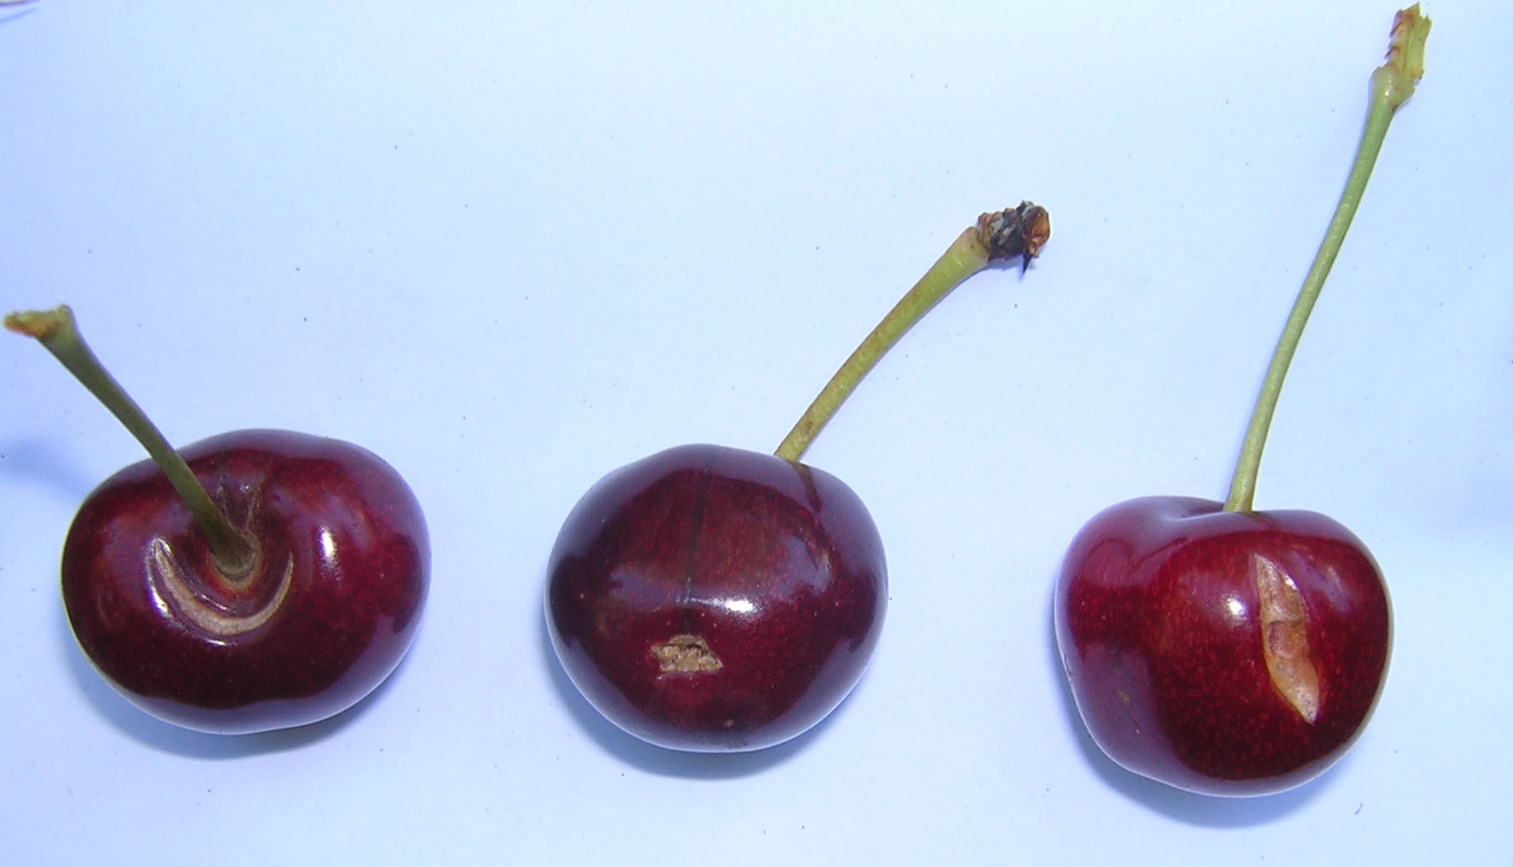 These cherries show three types of fruit cracking. The cherry on the left shows stembowl cracking, the center cherry shows distal end cracking, and the cherry on the right shows side cracking.